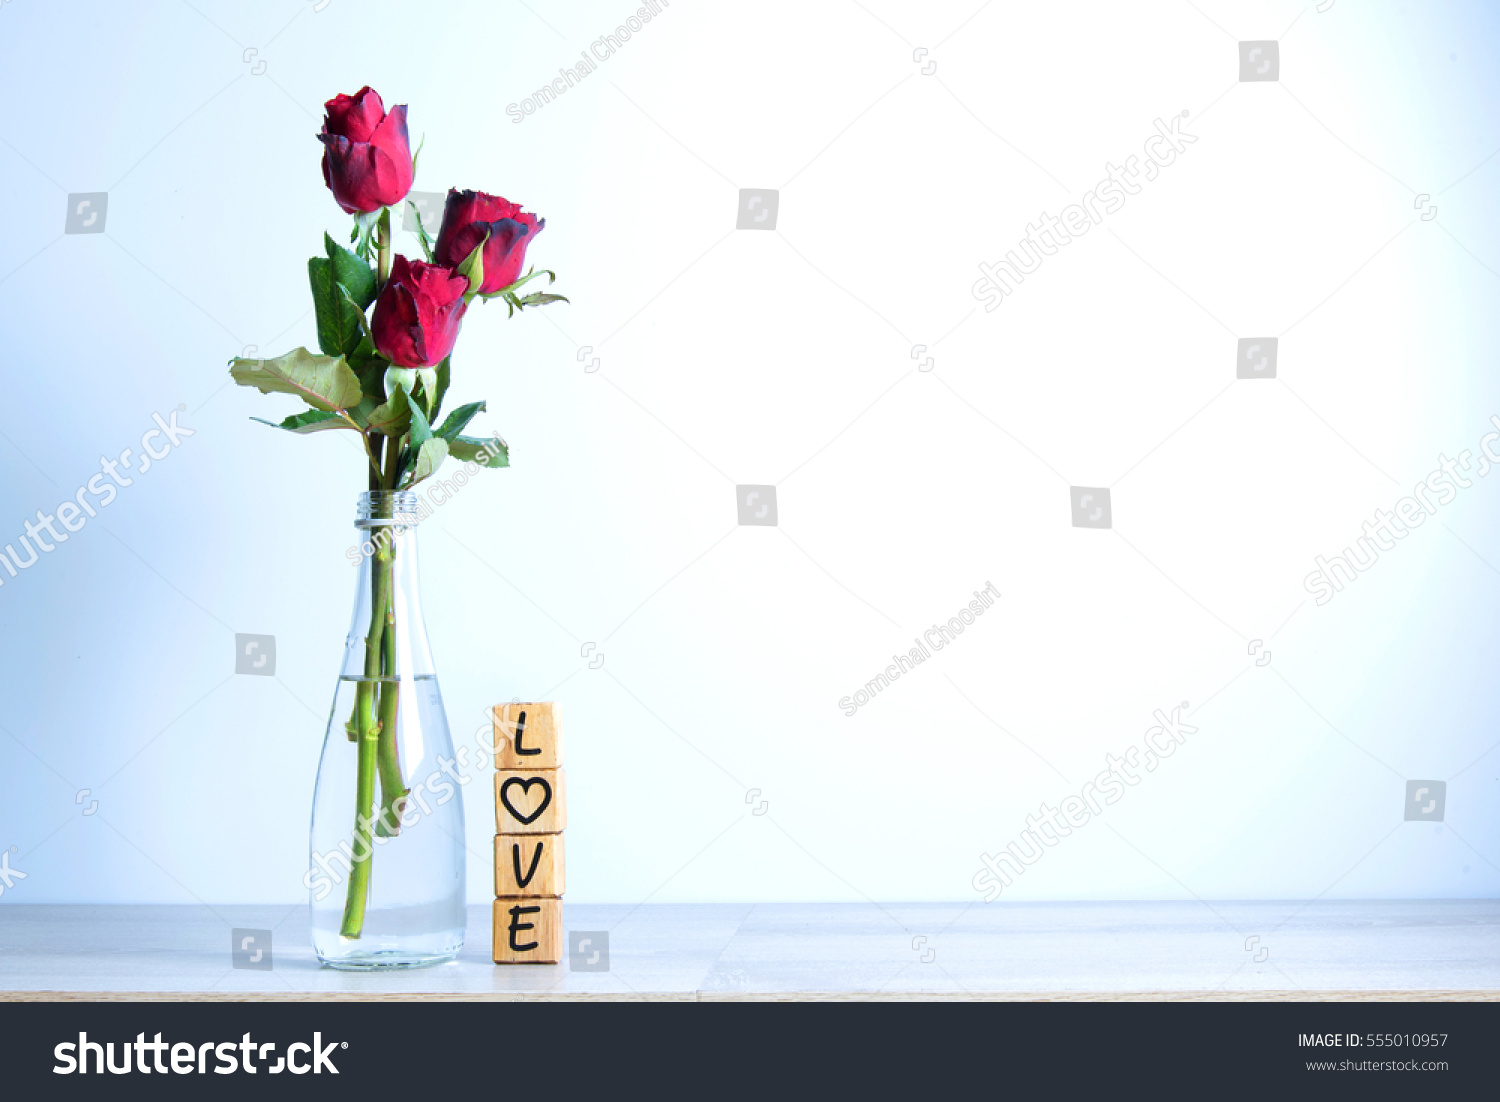 Four Rustic Alphabet Blocks Spelling Out Stock Photo (Edit Now ... on biology flower, food flower, drawing flower, singing flower, english flower, sequencing flower, word flower, geometry flower, bible flower, math flower, time flower,